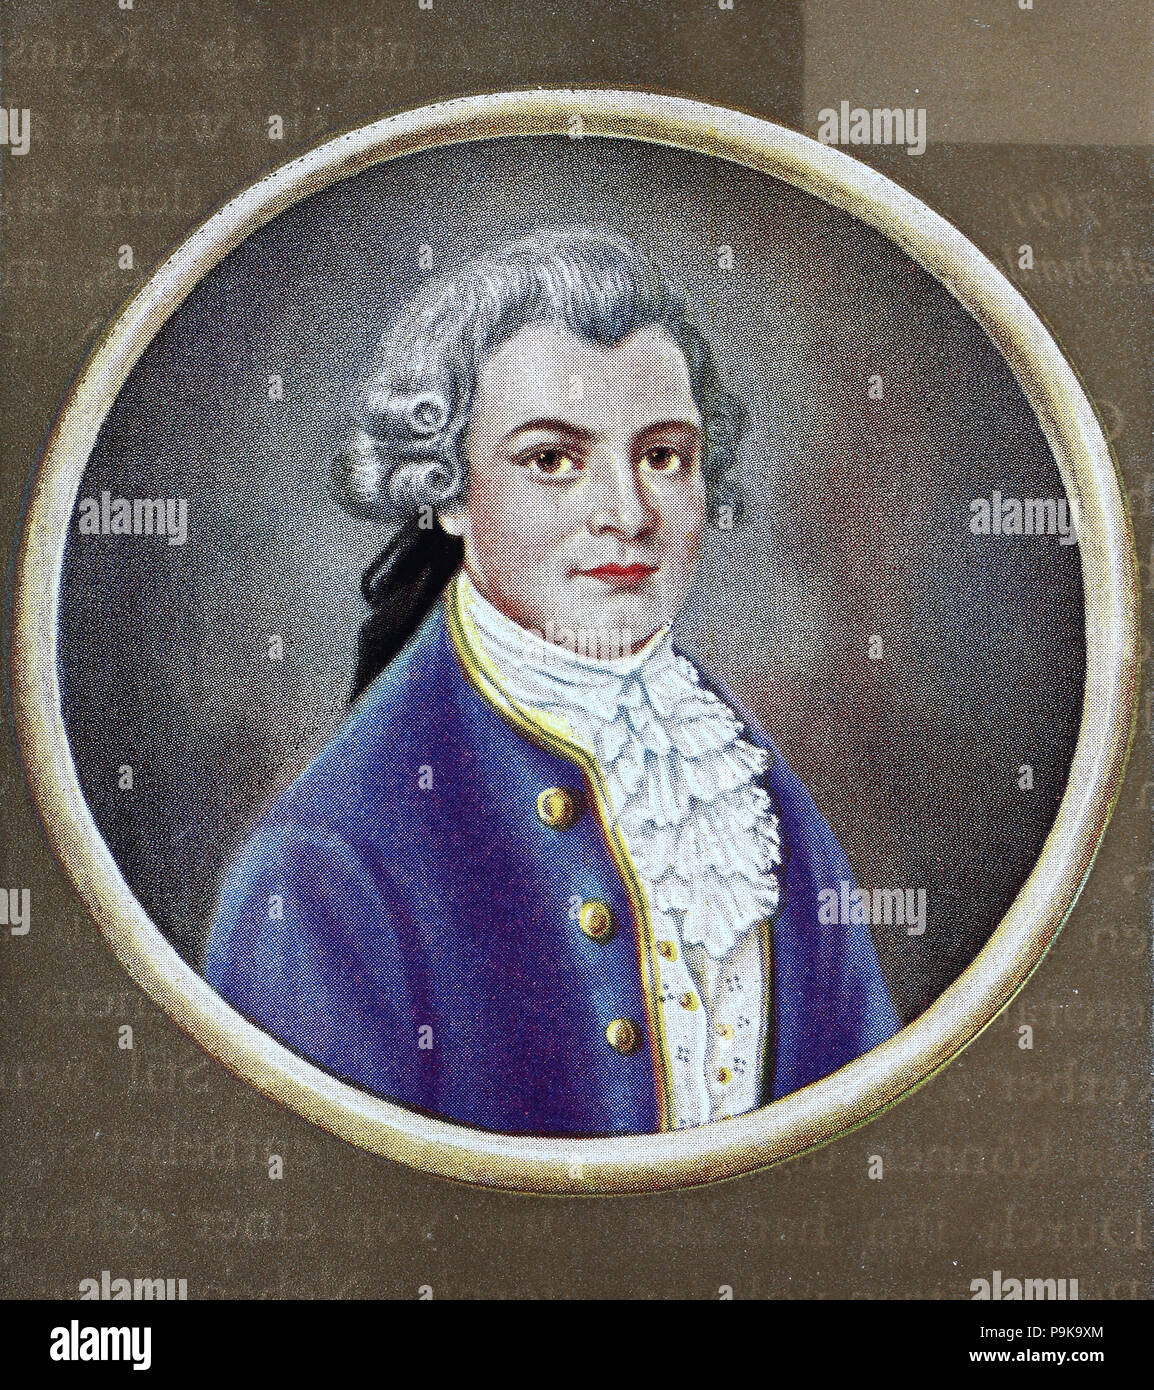 Gotthold Ephraim Lessing, 22 January 1729 – 15 February 1781, was a German writer, philosopher, dramatist, publicist and art critic, and one of the most outstanding representatives of the Enlightenment era, digital improved reproduction of an original print from the year 1900 - Stock Image